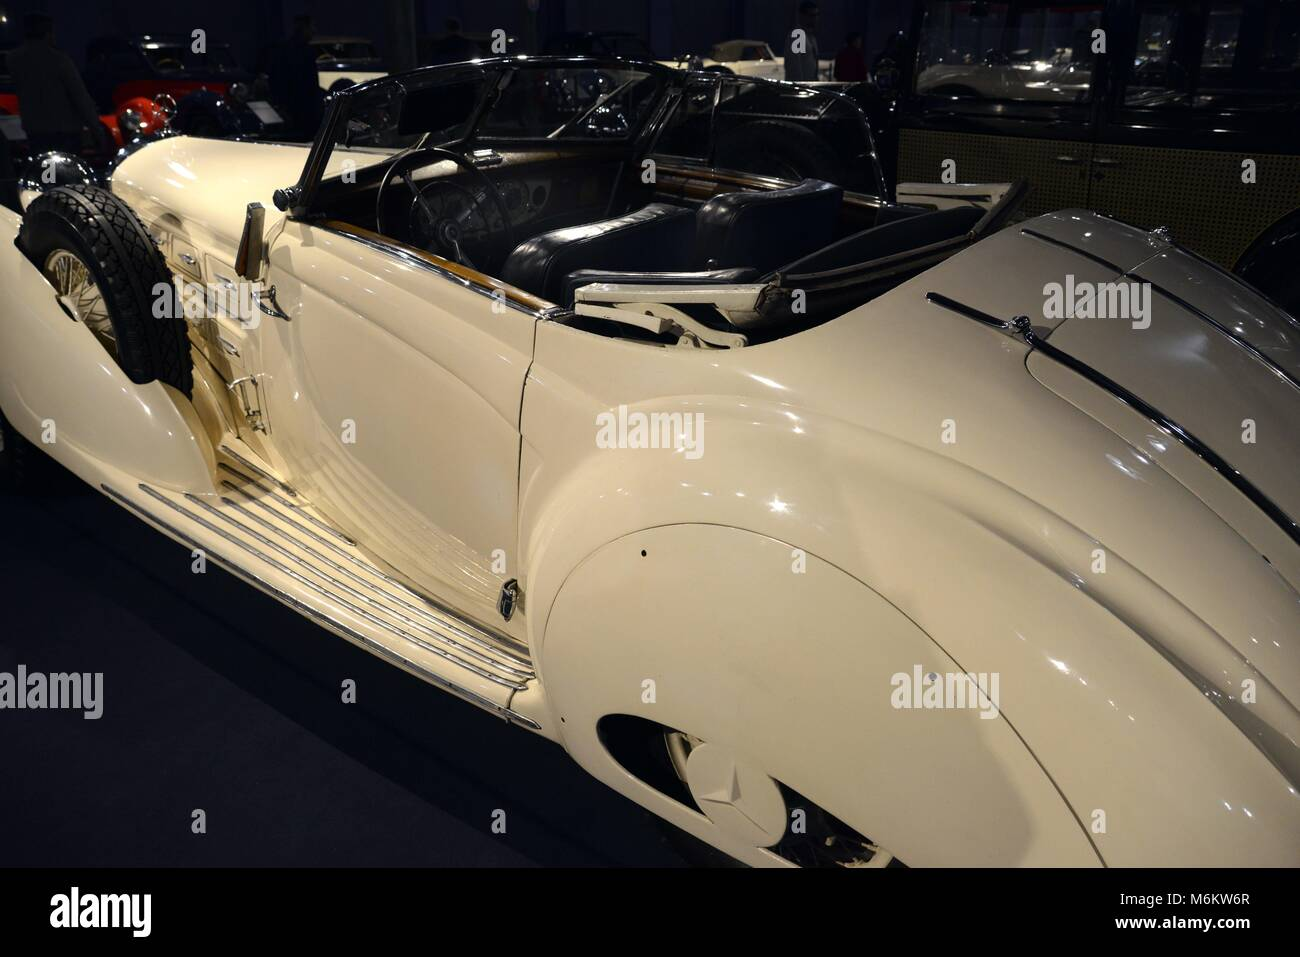 A Mercedes 540K Spezial Is Exhibited At The Car Collection Of Museum Cit De LAutomobile In Mulhouse